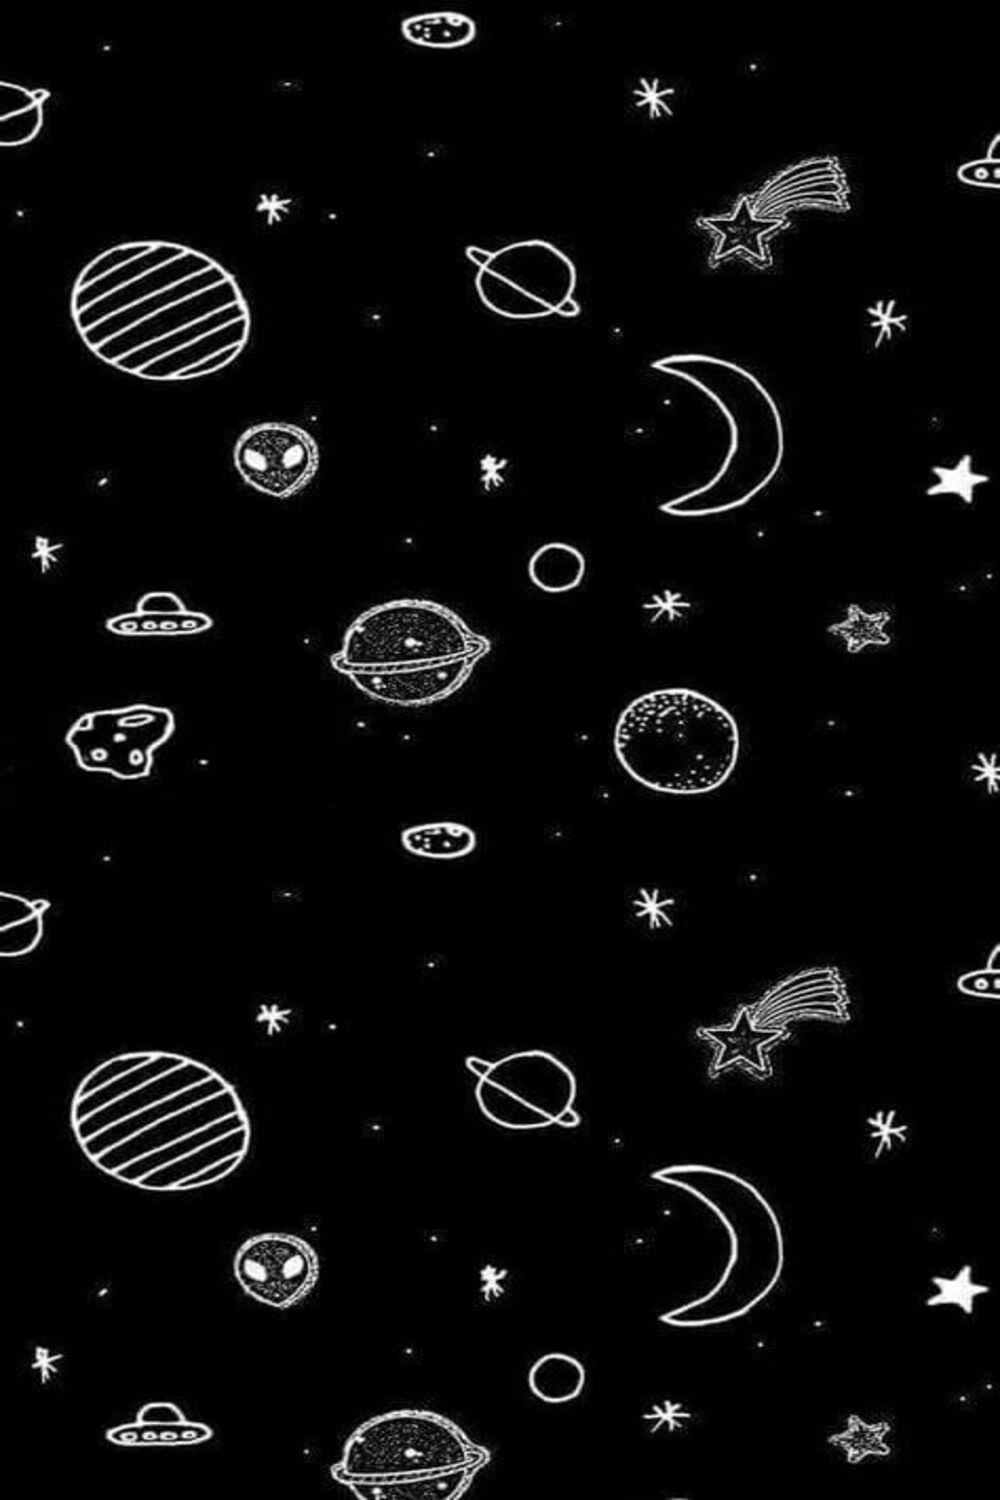 Download Latest Space Phone Wallpaper HD Today by mbaharga.com